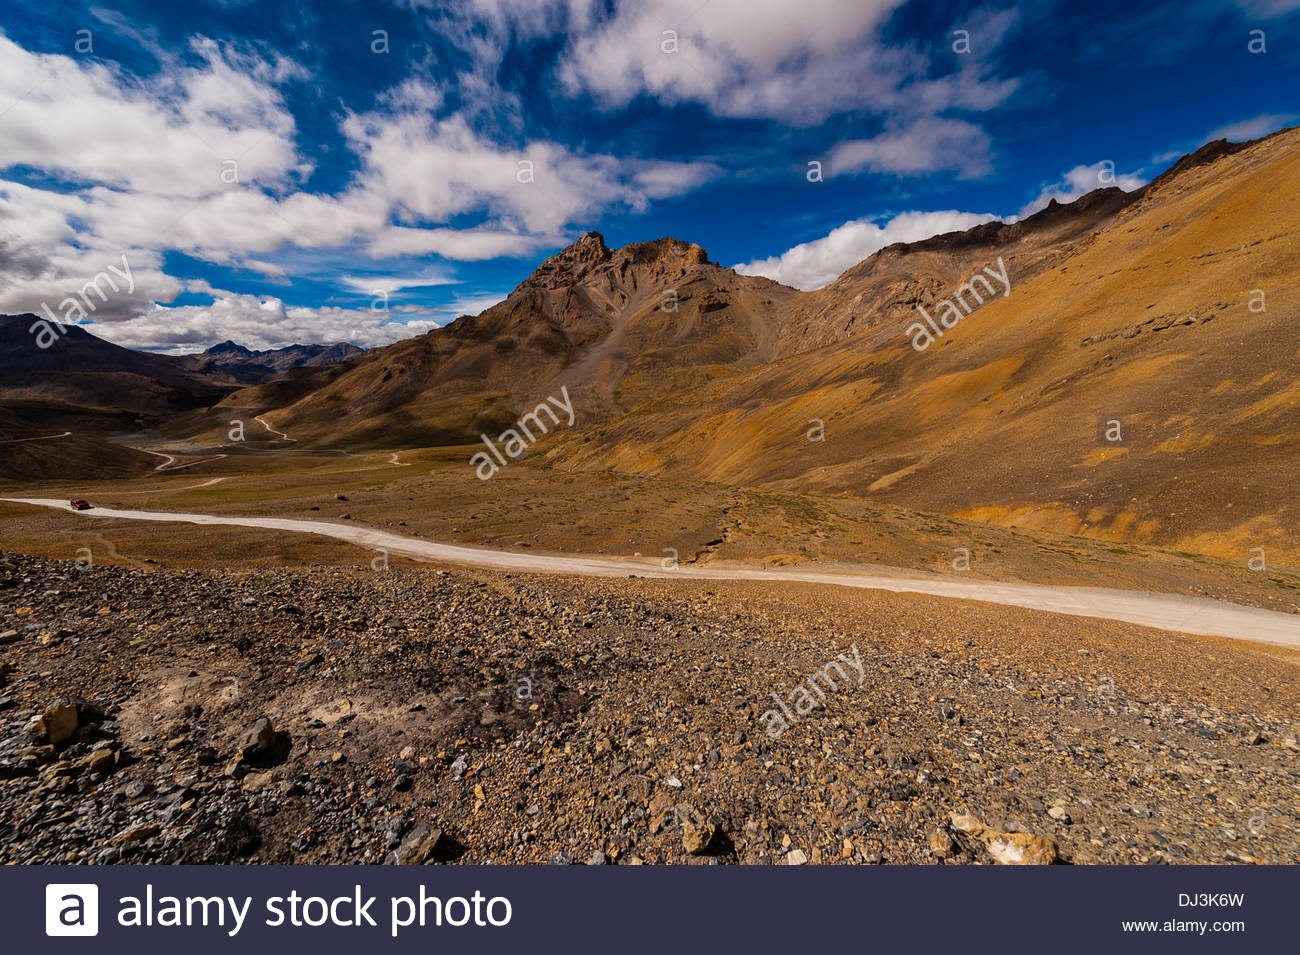 Leh-Manali Highway, Himachal Pradesh, India. - Stock Image